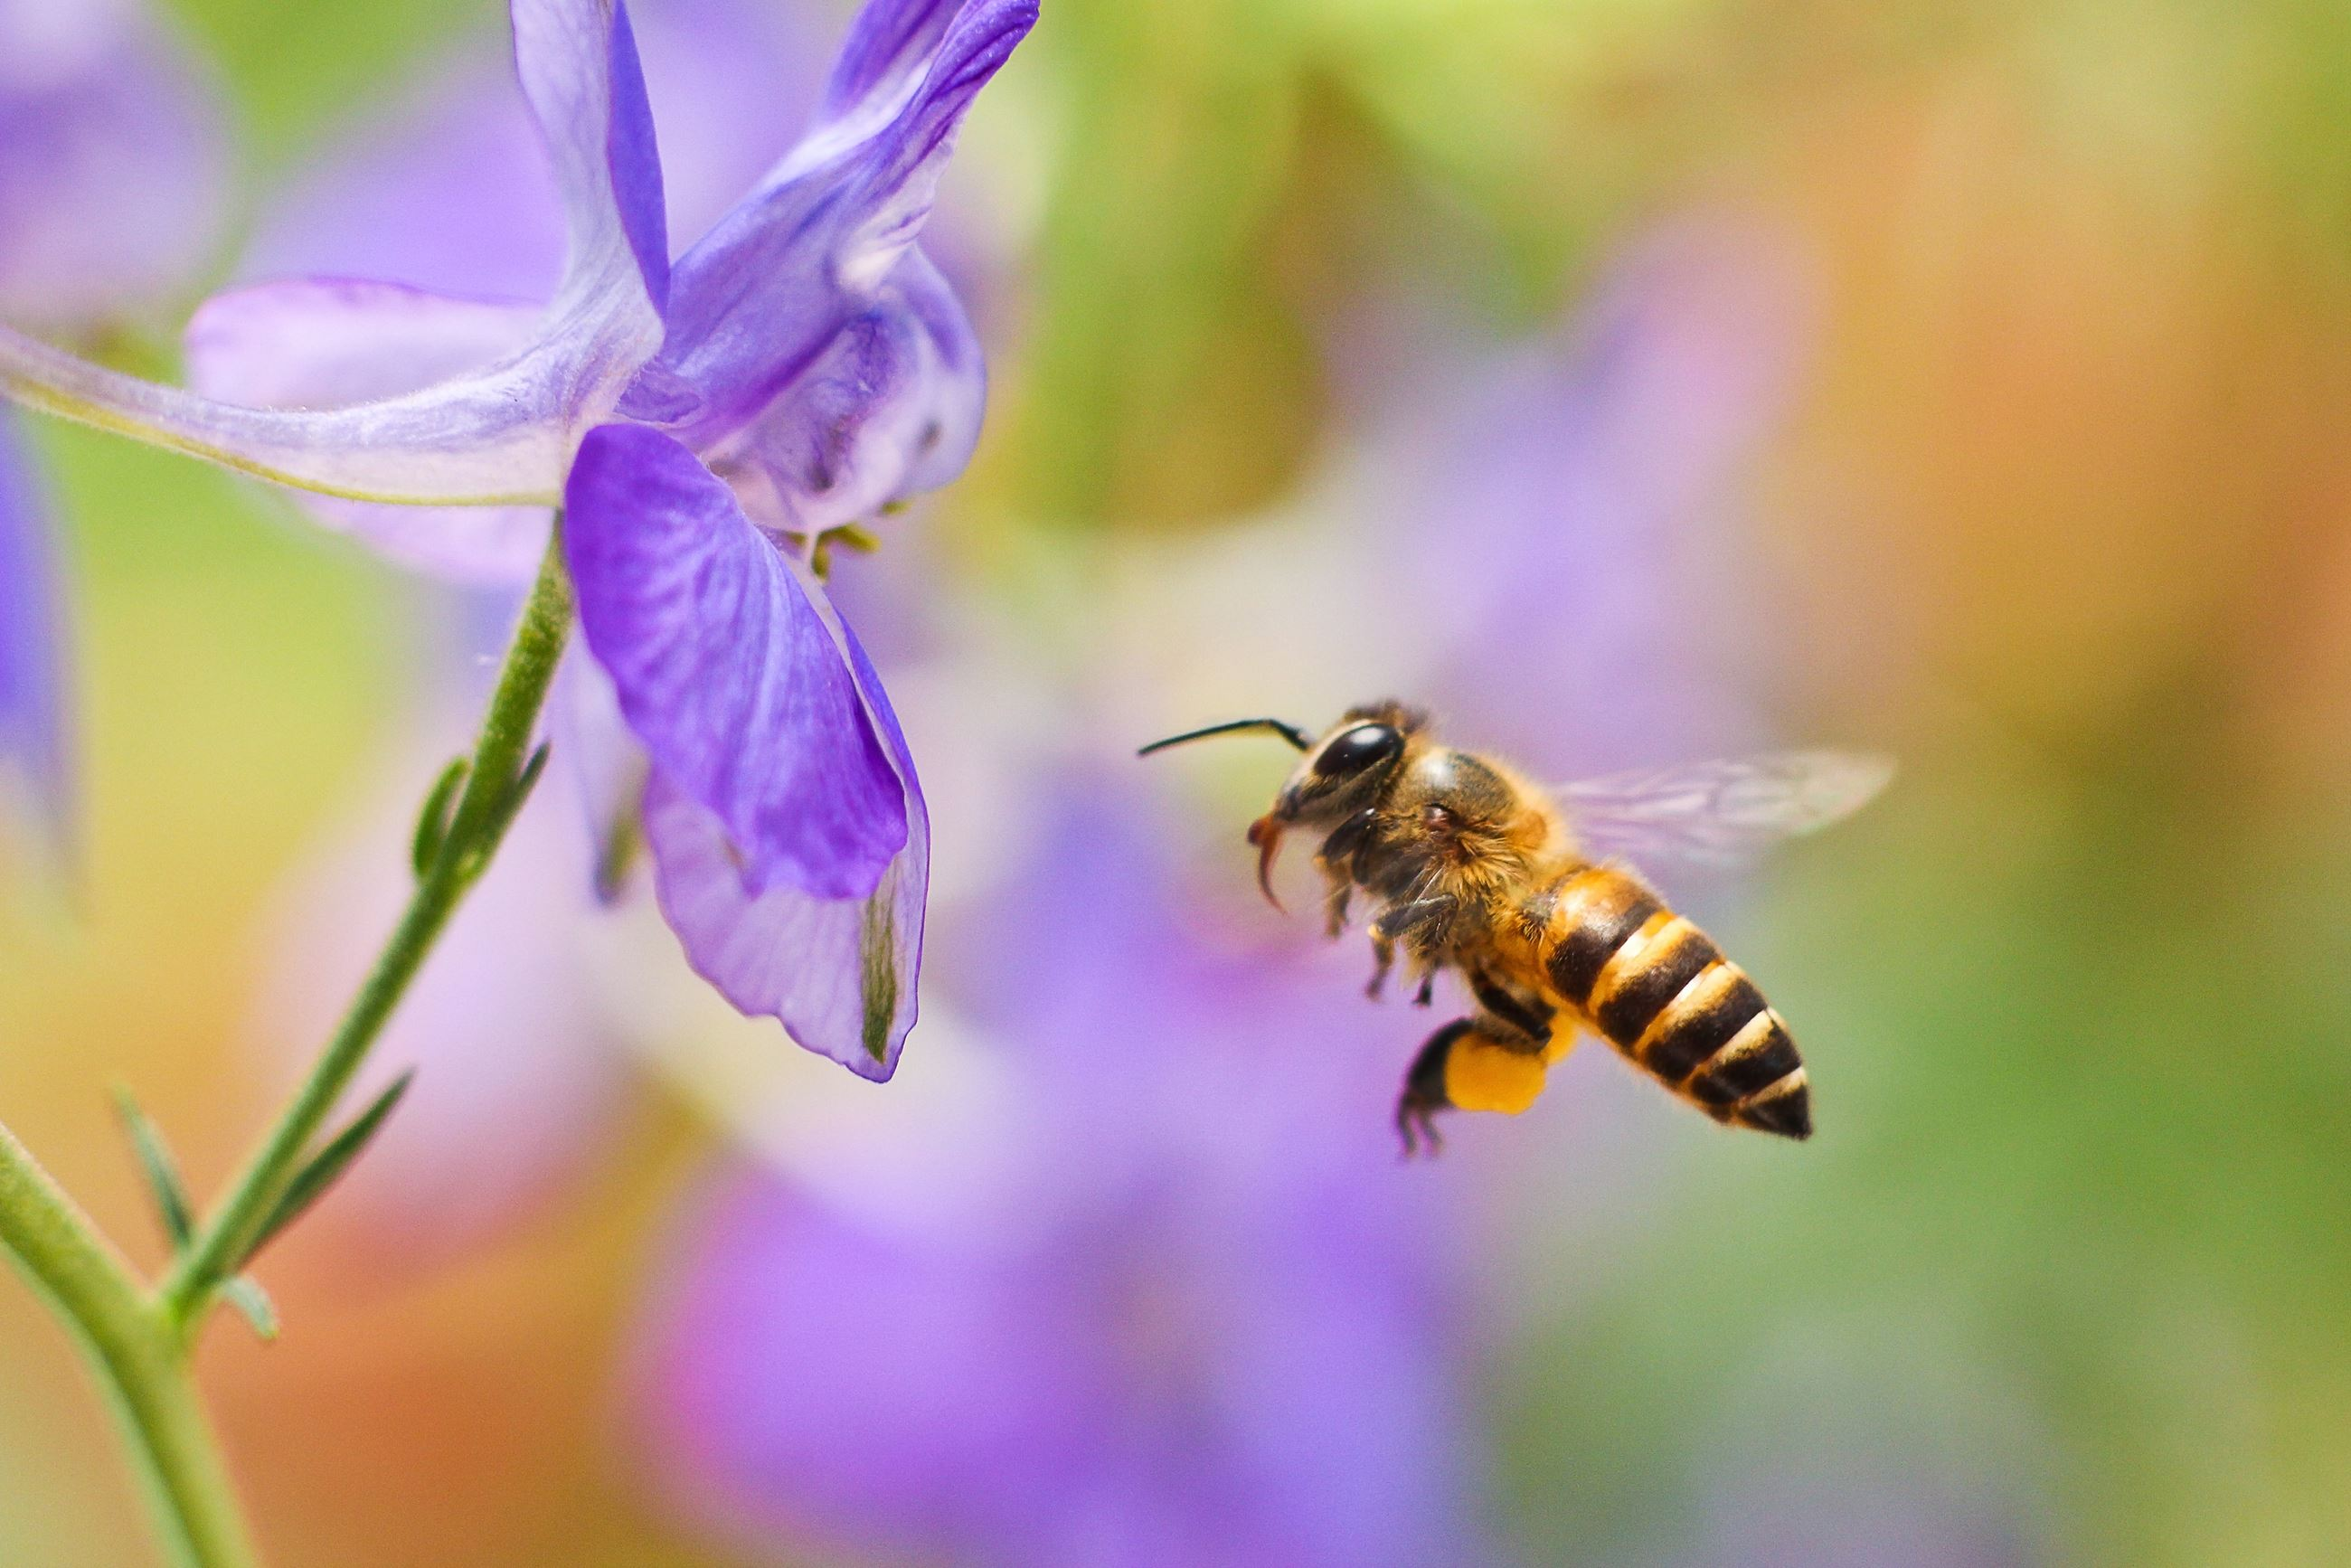 Bee flying next to a purple flower